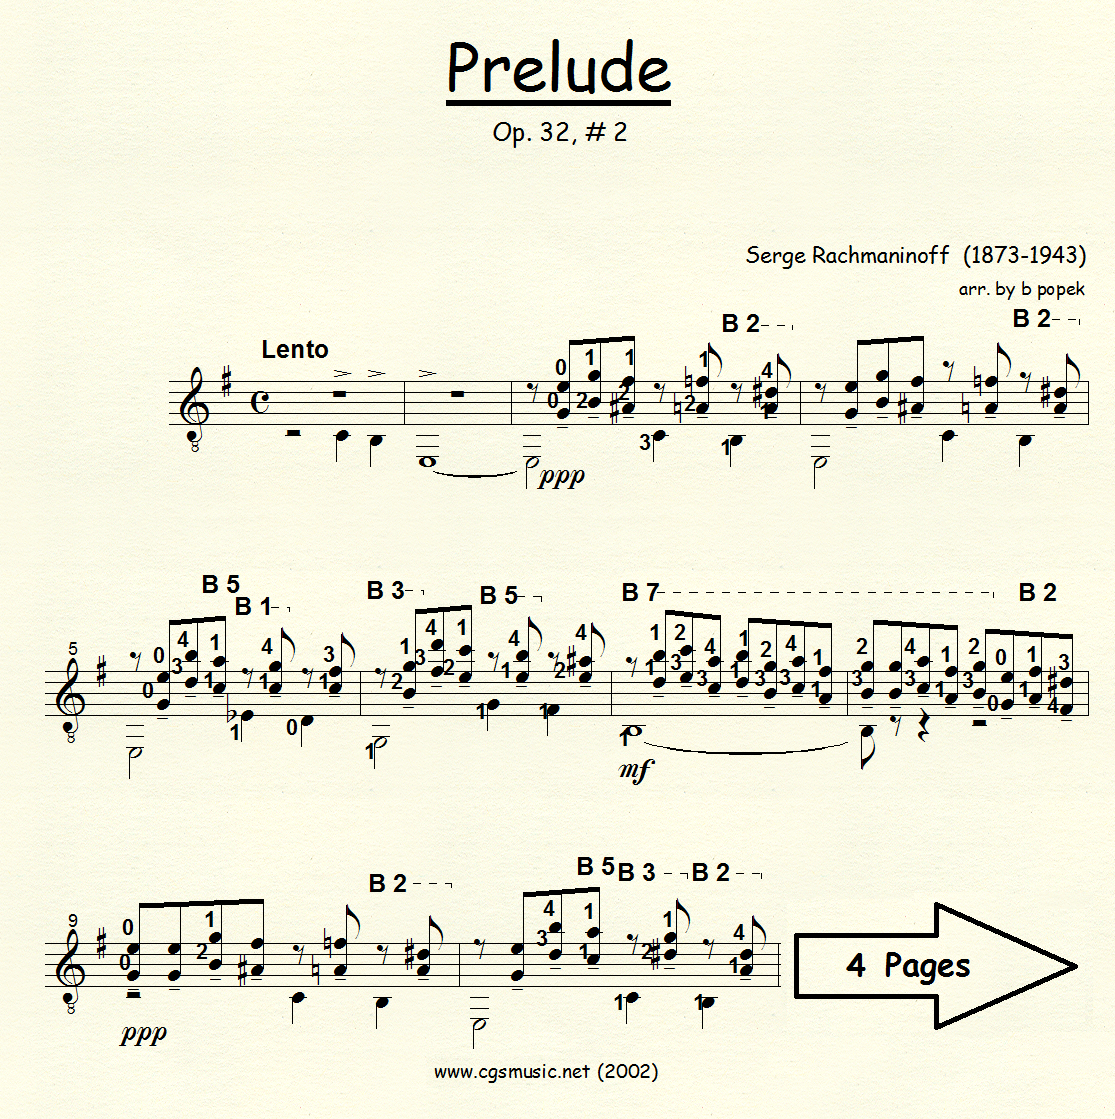 Prelude Op 32 #2 (Rachmaninoff) for Classical Guitar in Standard Notation